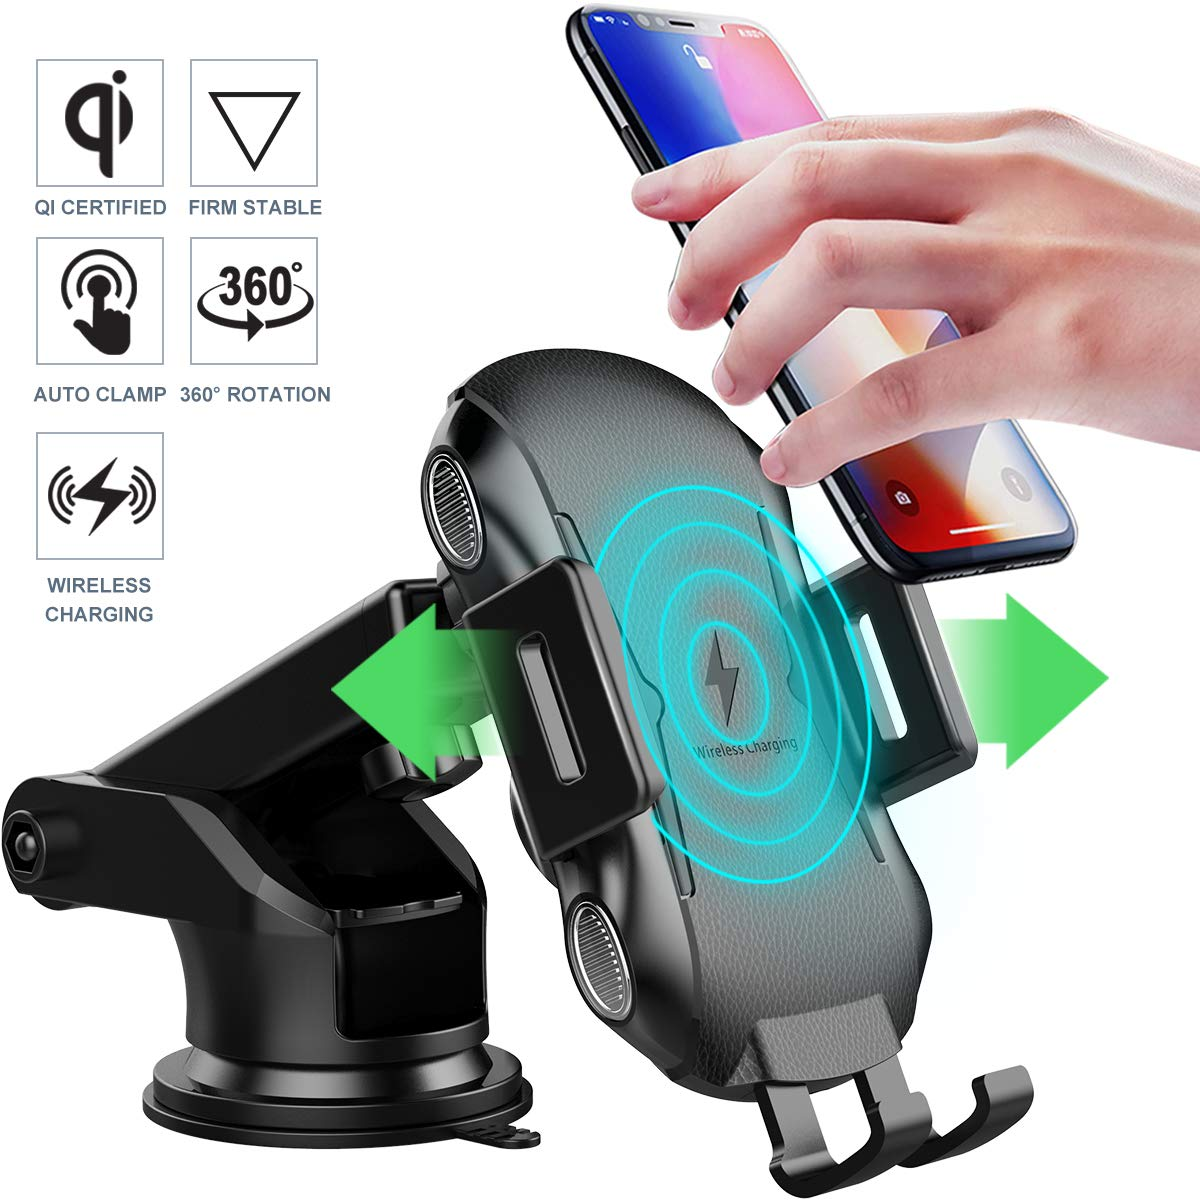 Universal Wireless Automatic Sensor Car Phone Holder and Charger, 10W QI Fast Charging, Auto Clamping Car Phone Mount for Dashboard / Windshield, Compatible for iPhone X/8/7/6S, Samsung S10/S9/S8 More